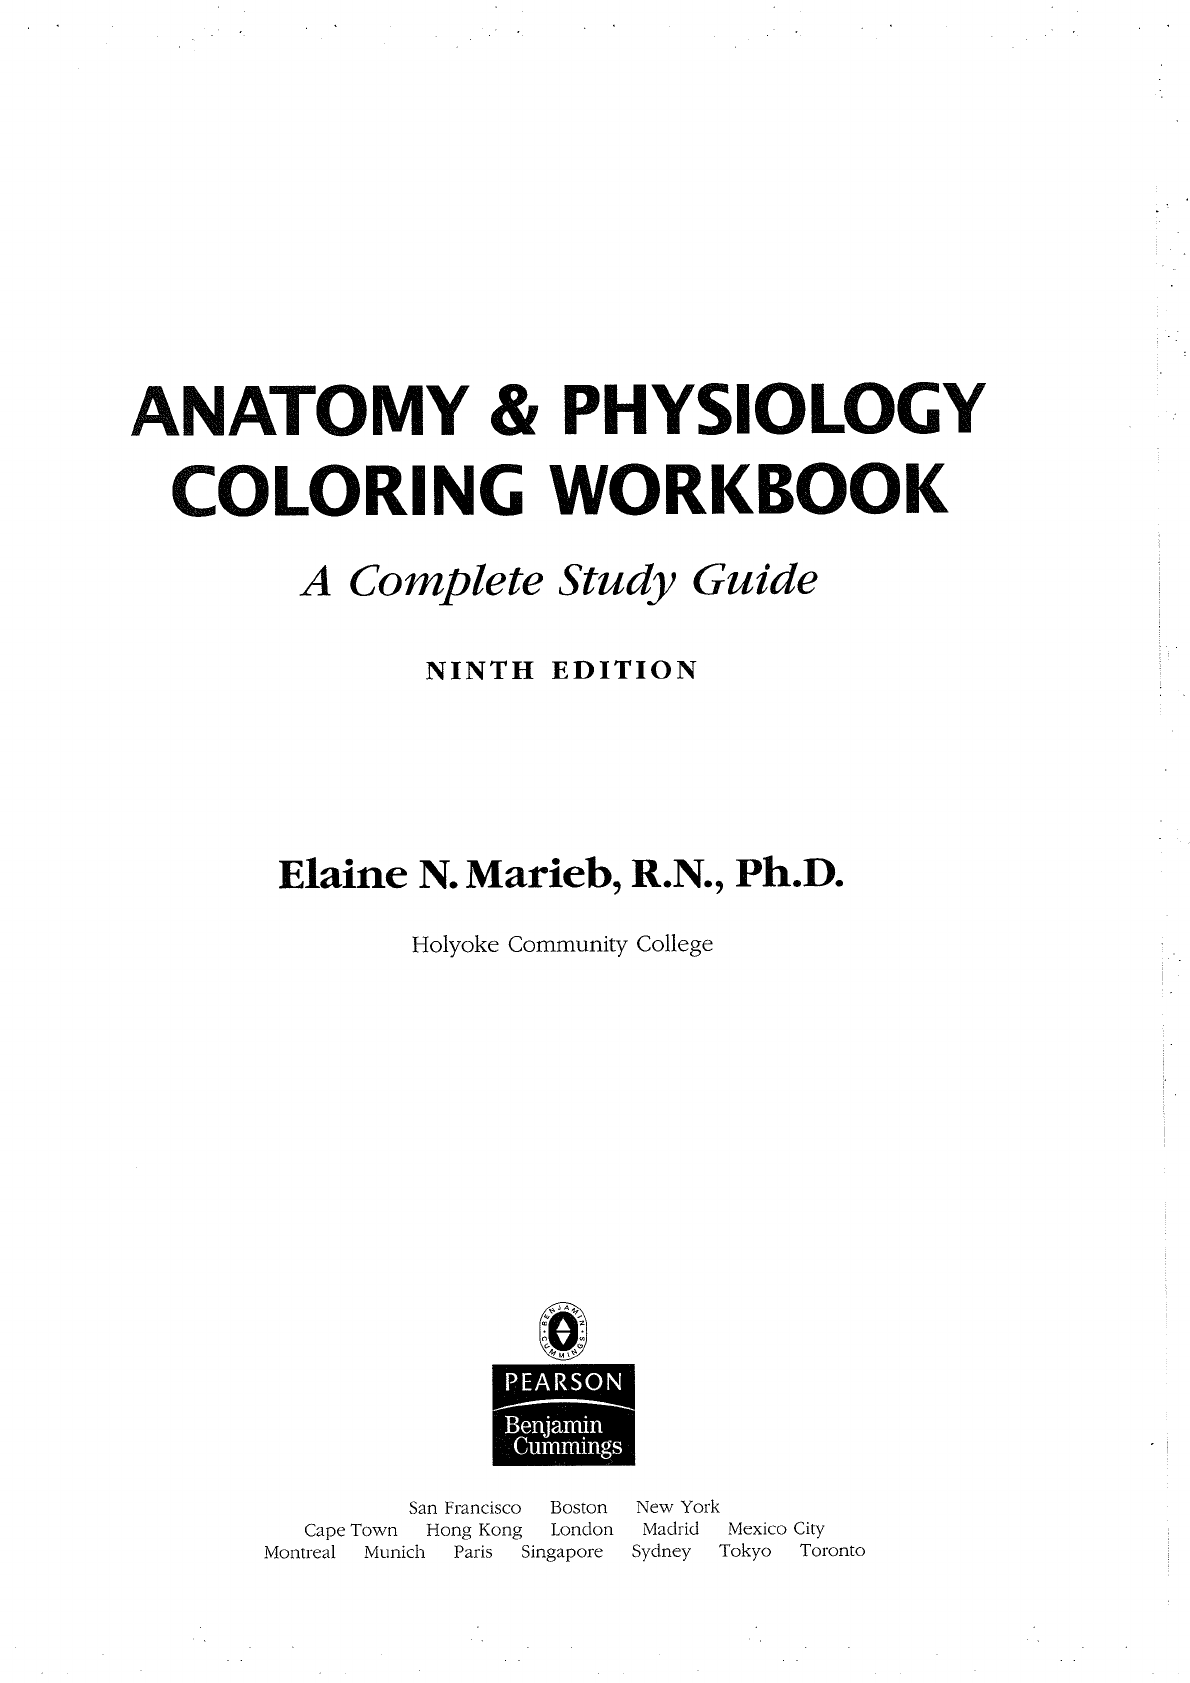 Anatomy And Physiology Coloring Workbook Chapter 7 Answer